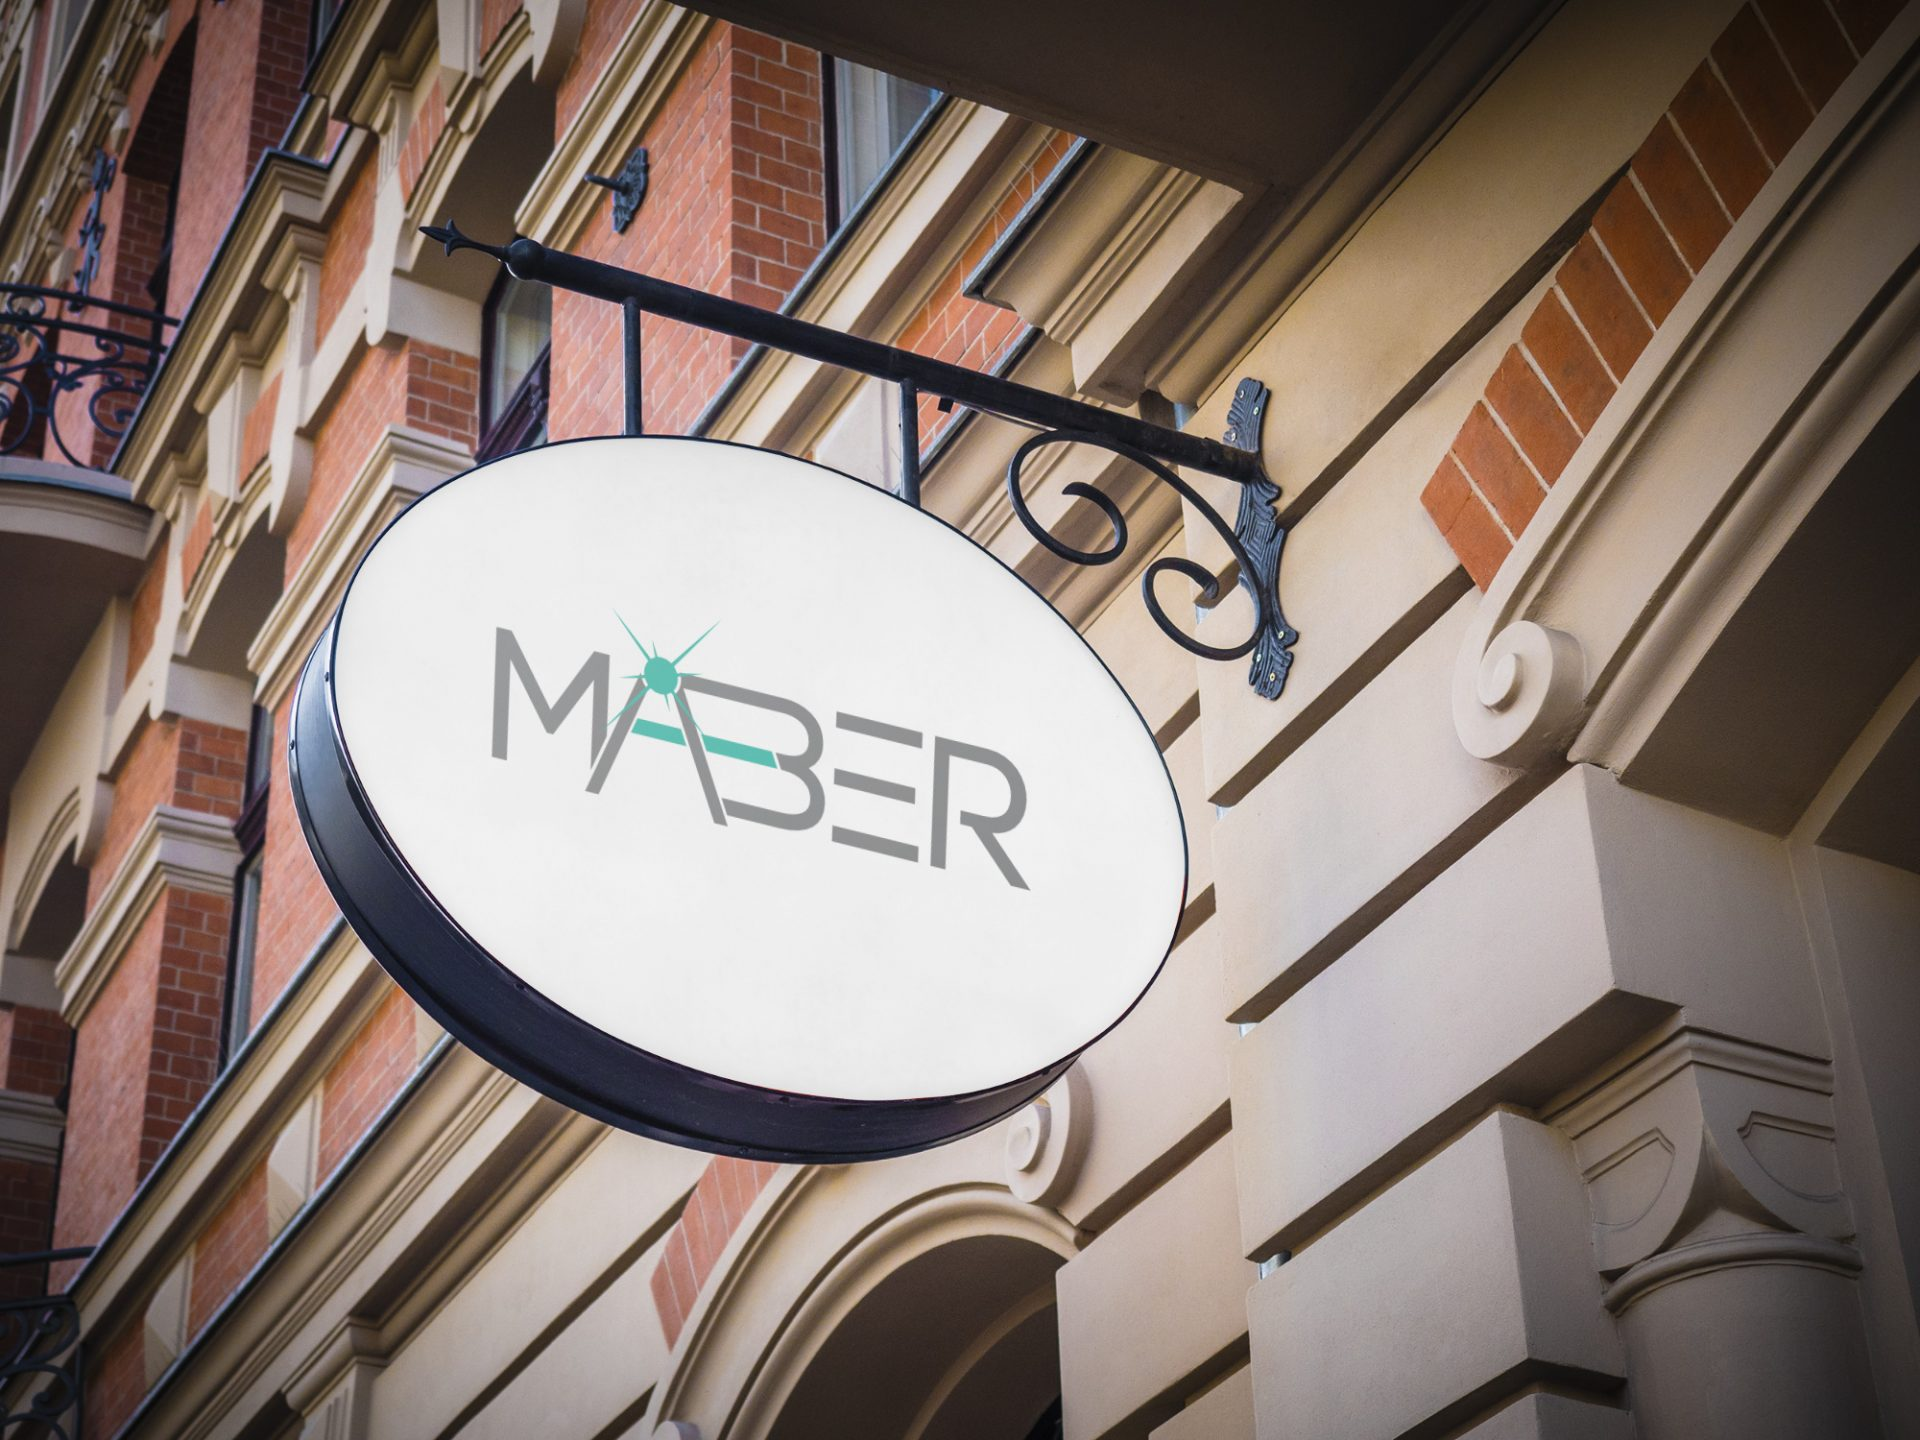 Maber Sign